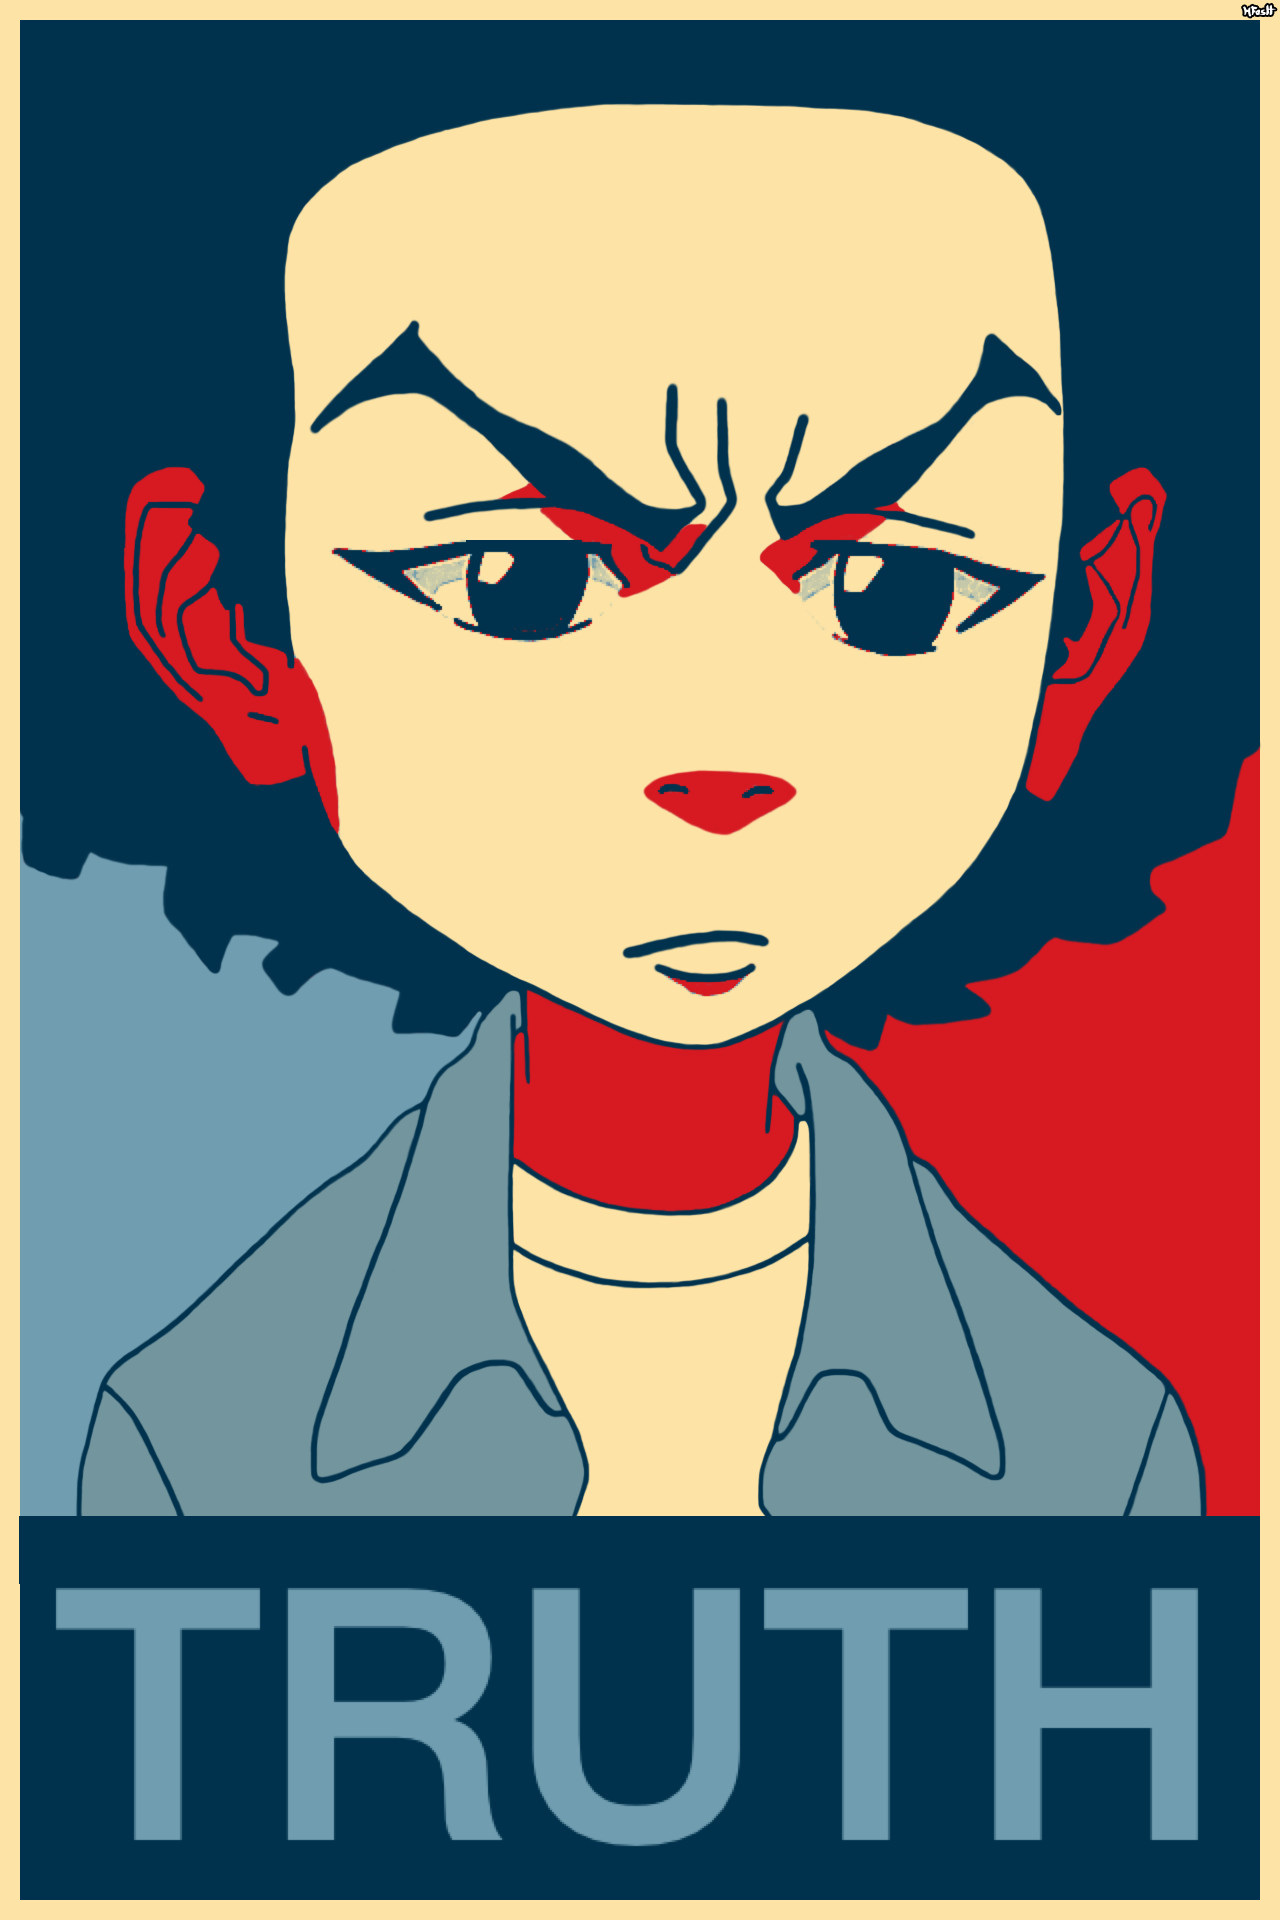 """Huey Freeman Only Speaks The Truth / The Boondocks """"What people need is the  truth"""